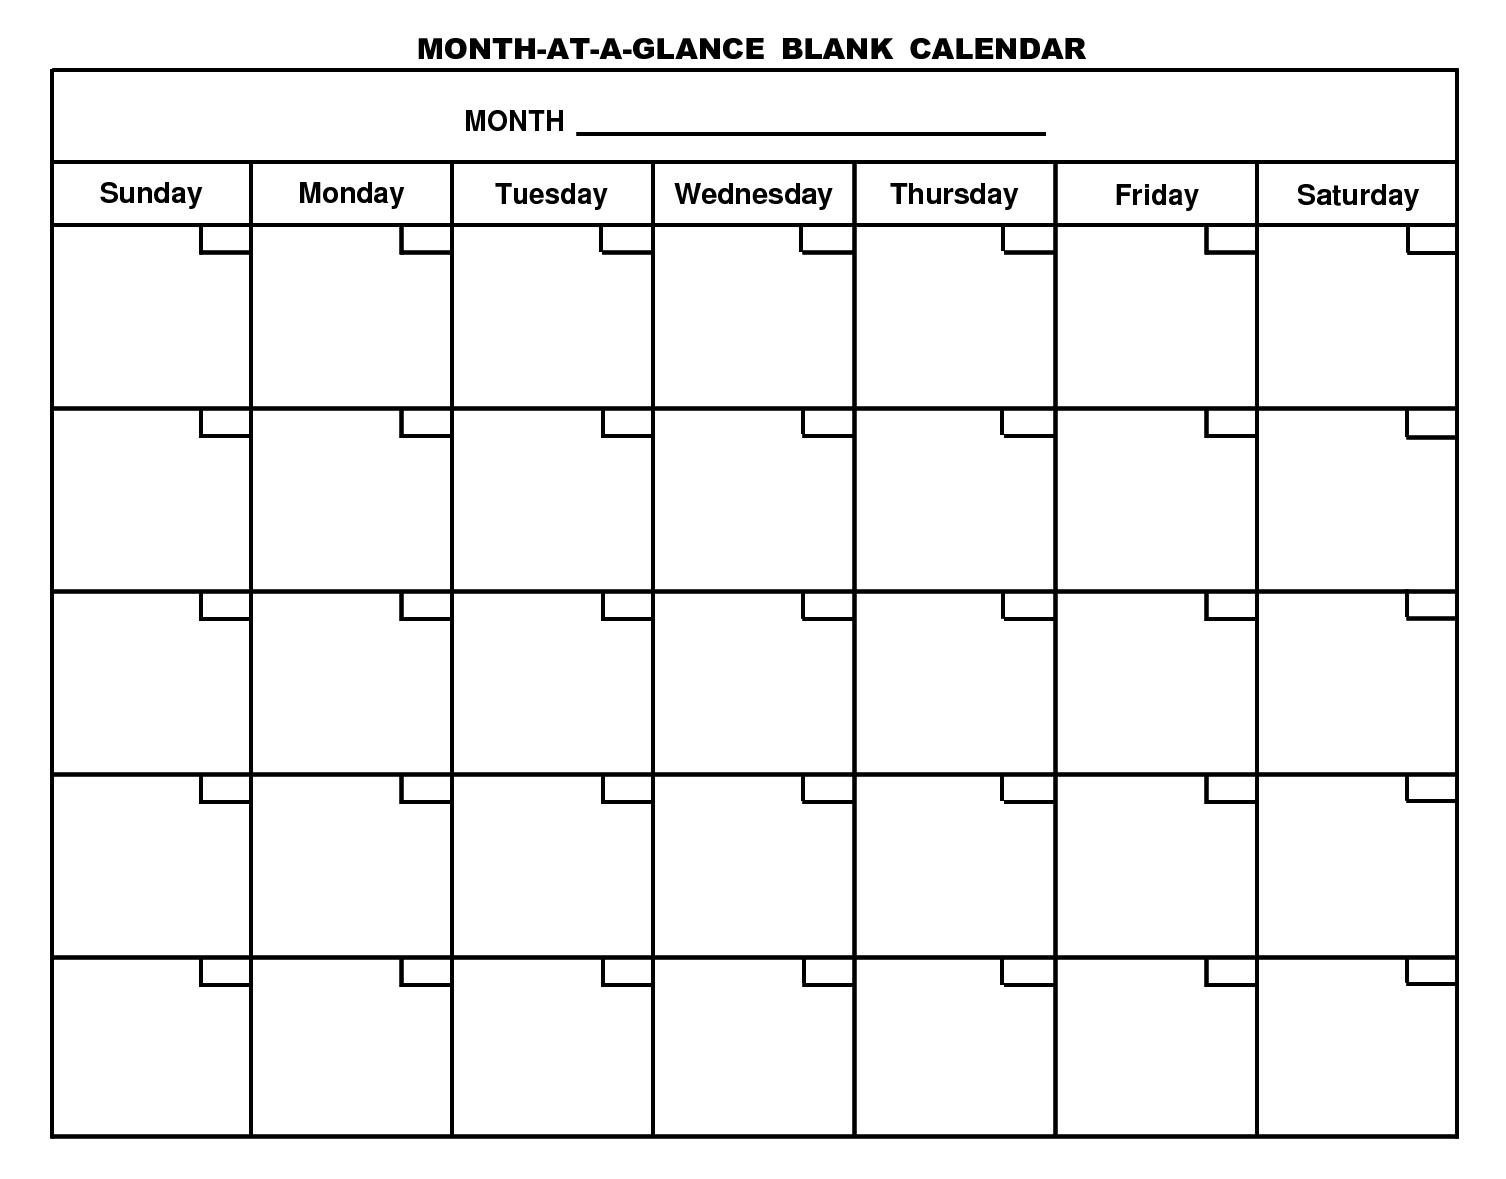 Blank Word Calendar Jose Mulinohouse Co With Regard To Blank_Blank Calendar In Word